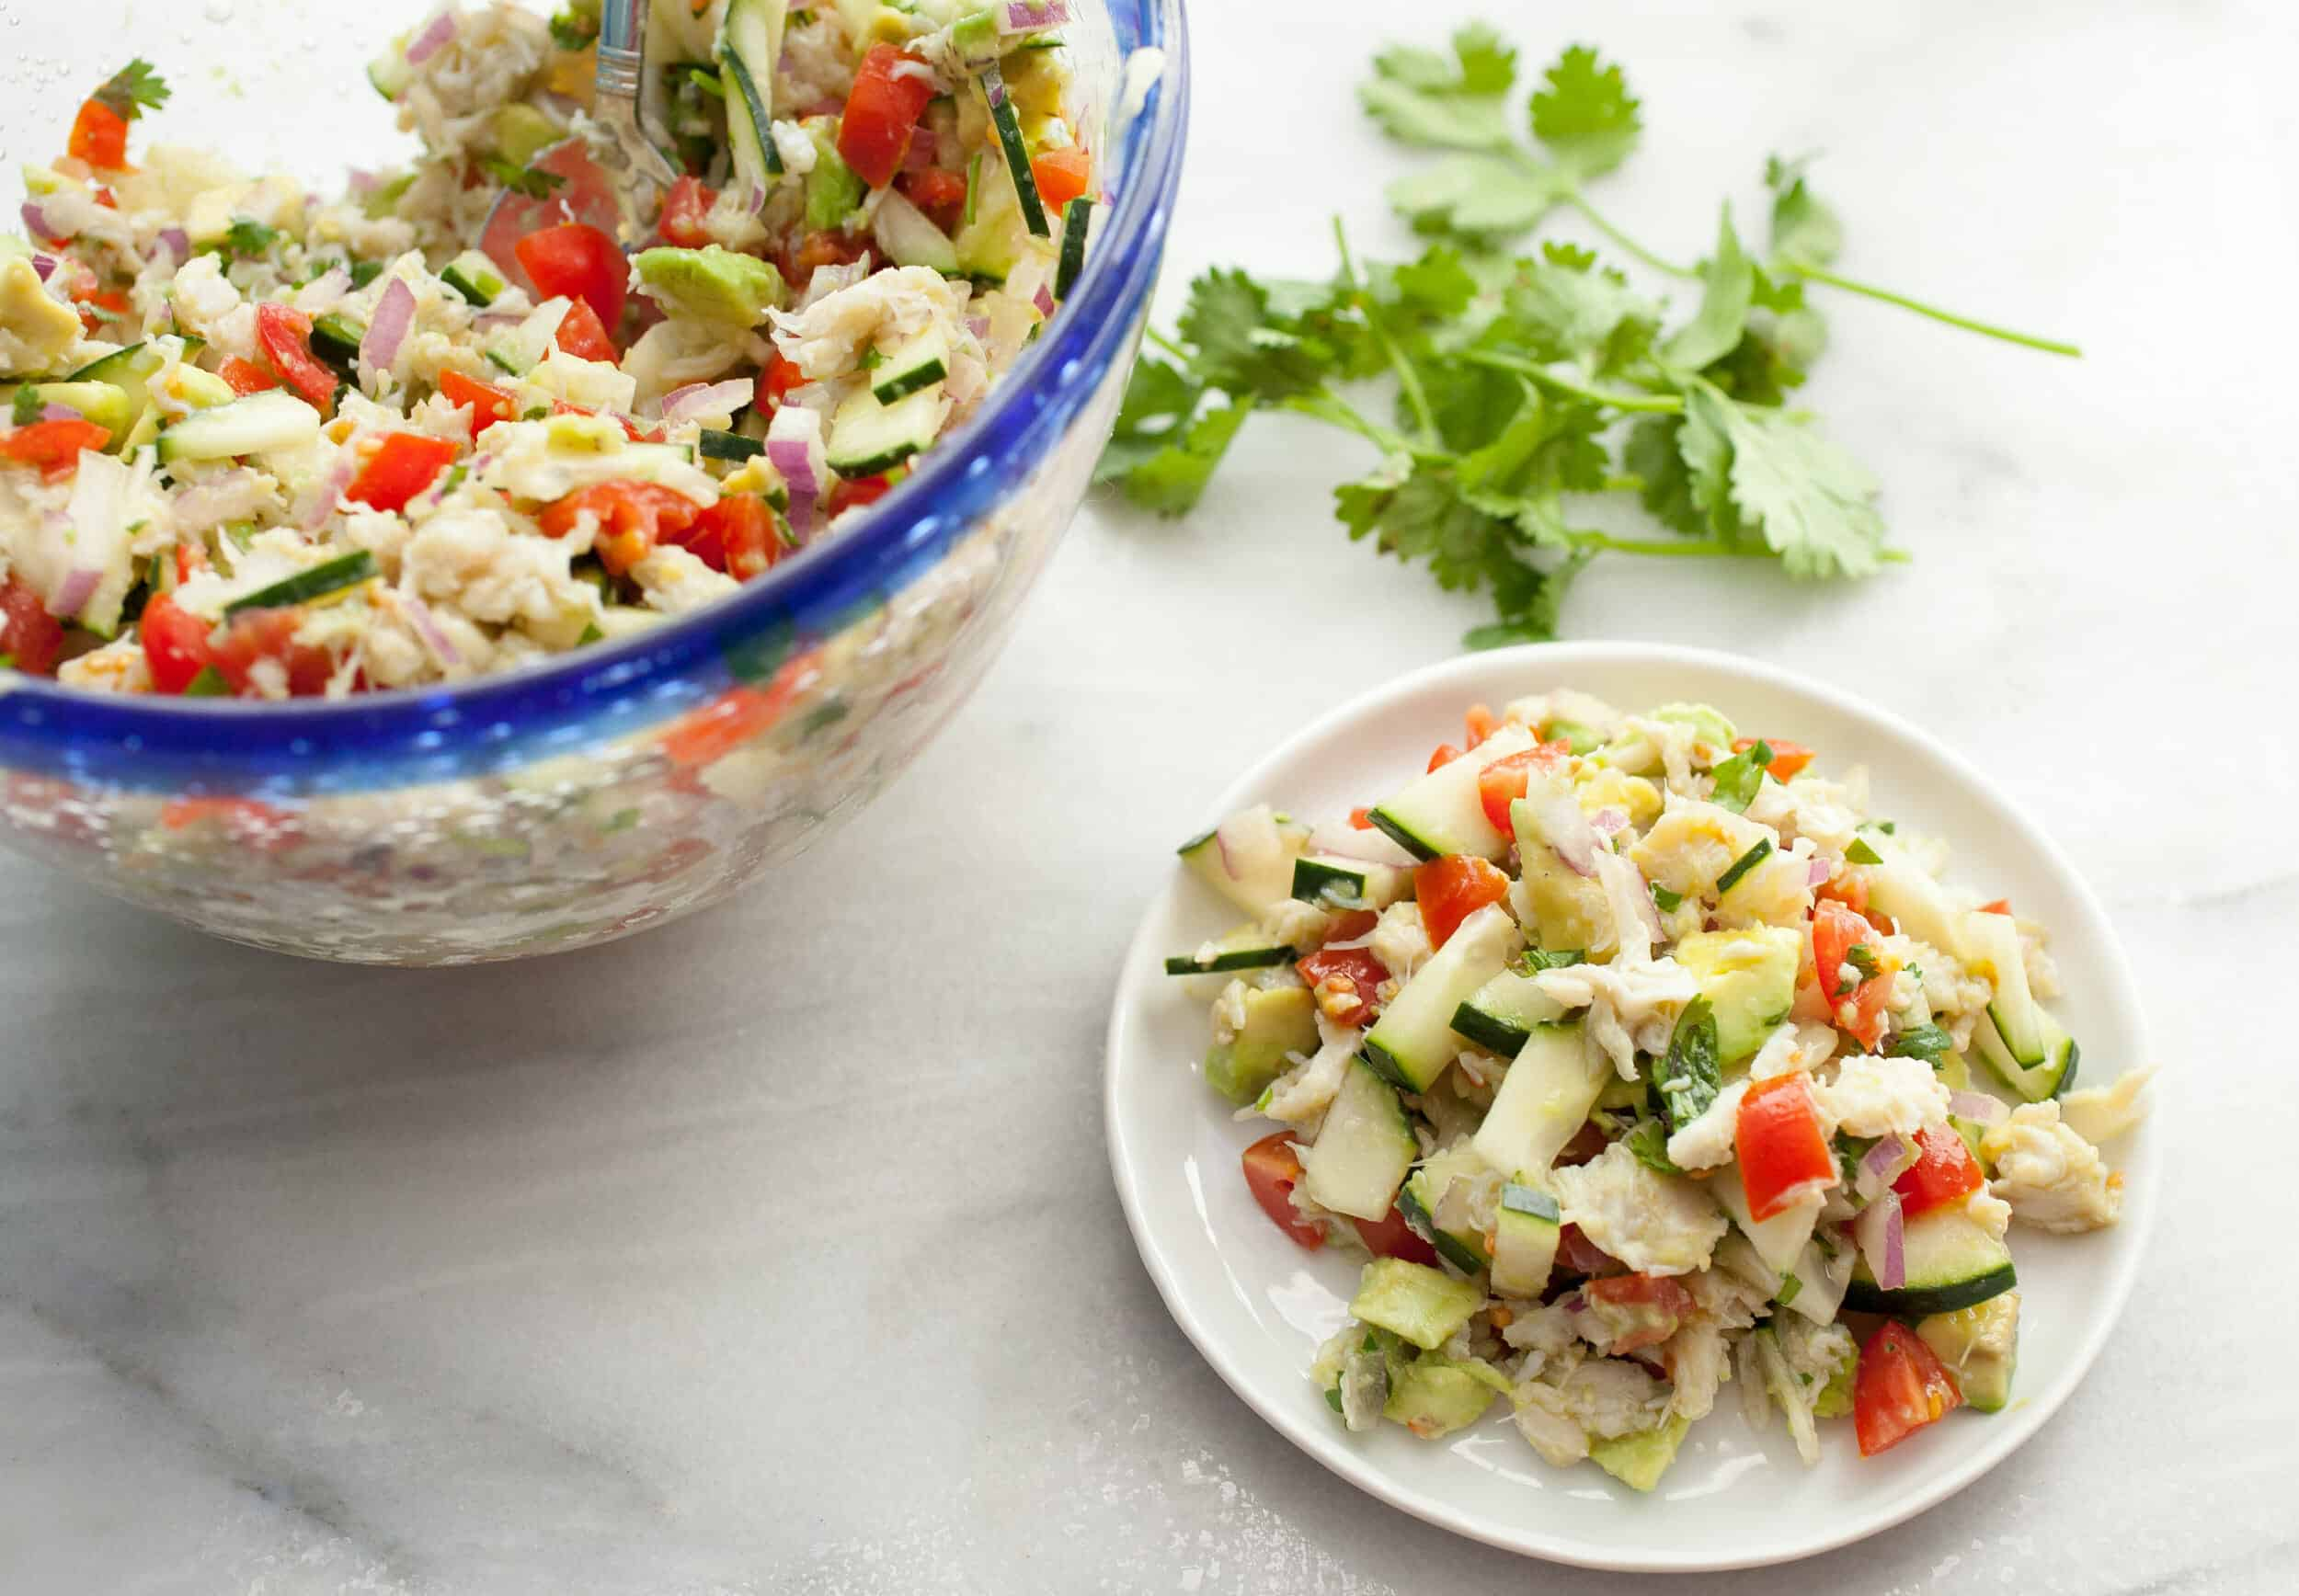 Check out the Incredibly Yummy Avocado Salad!